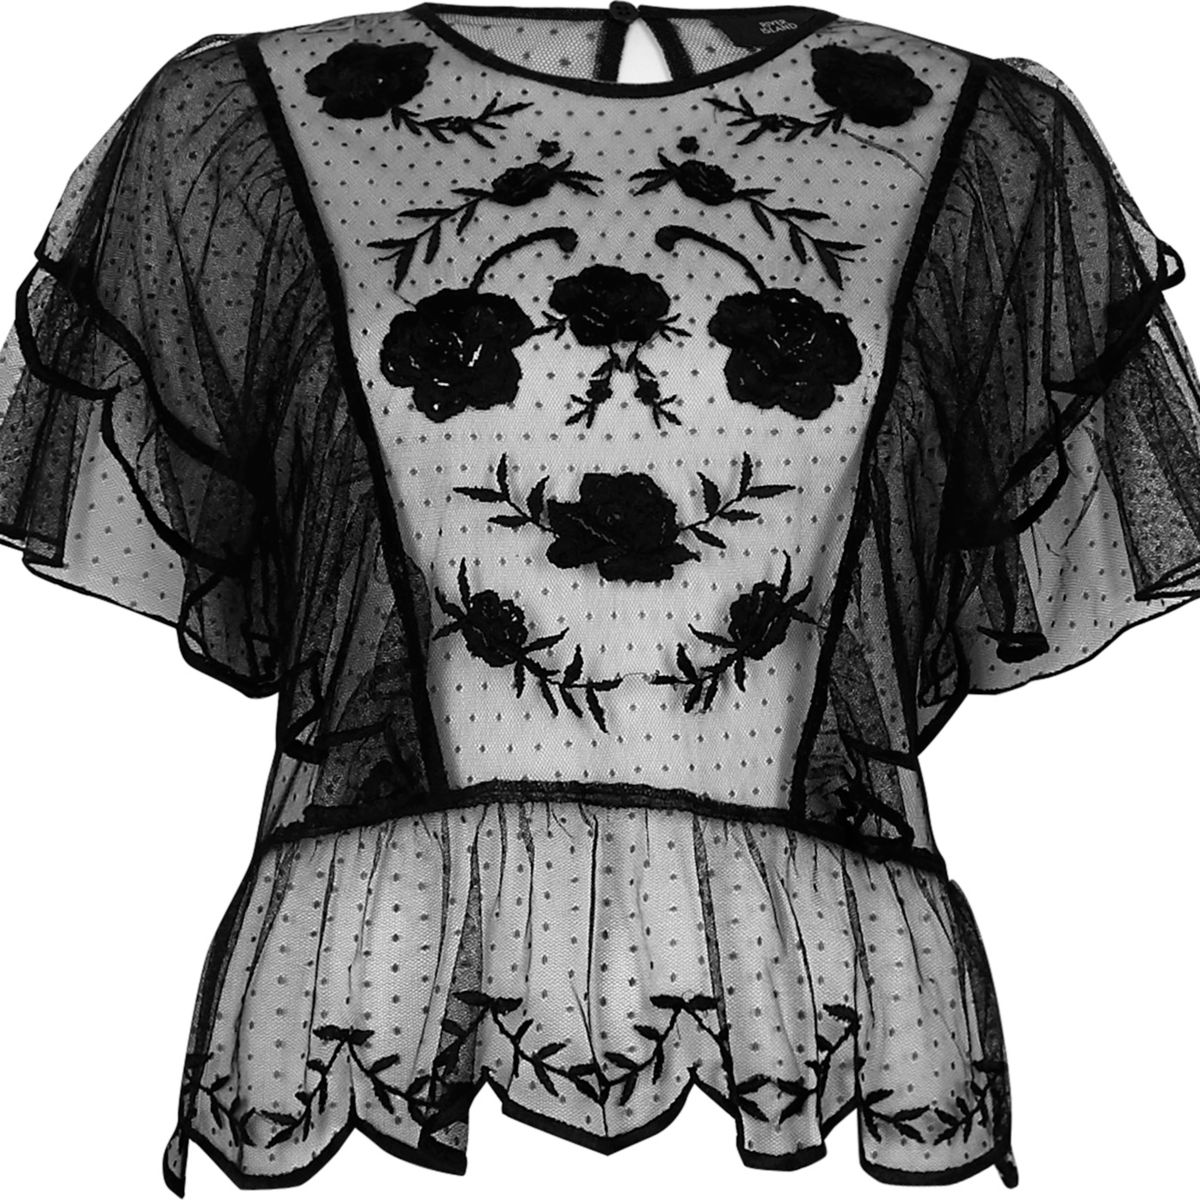 Black dobby mesh embroidered frill top